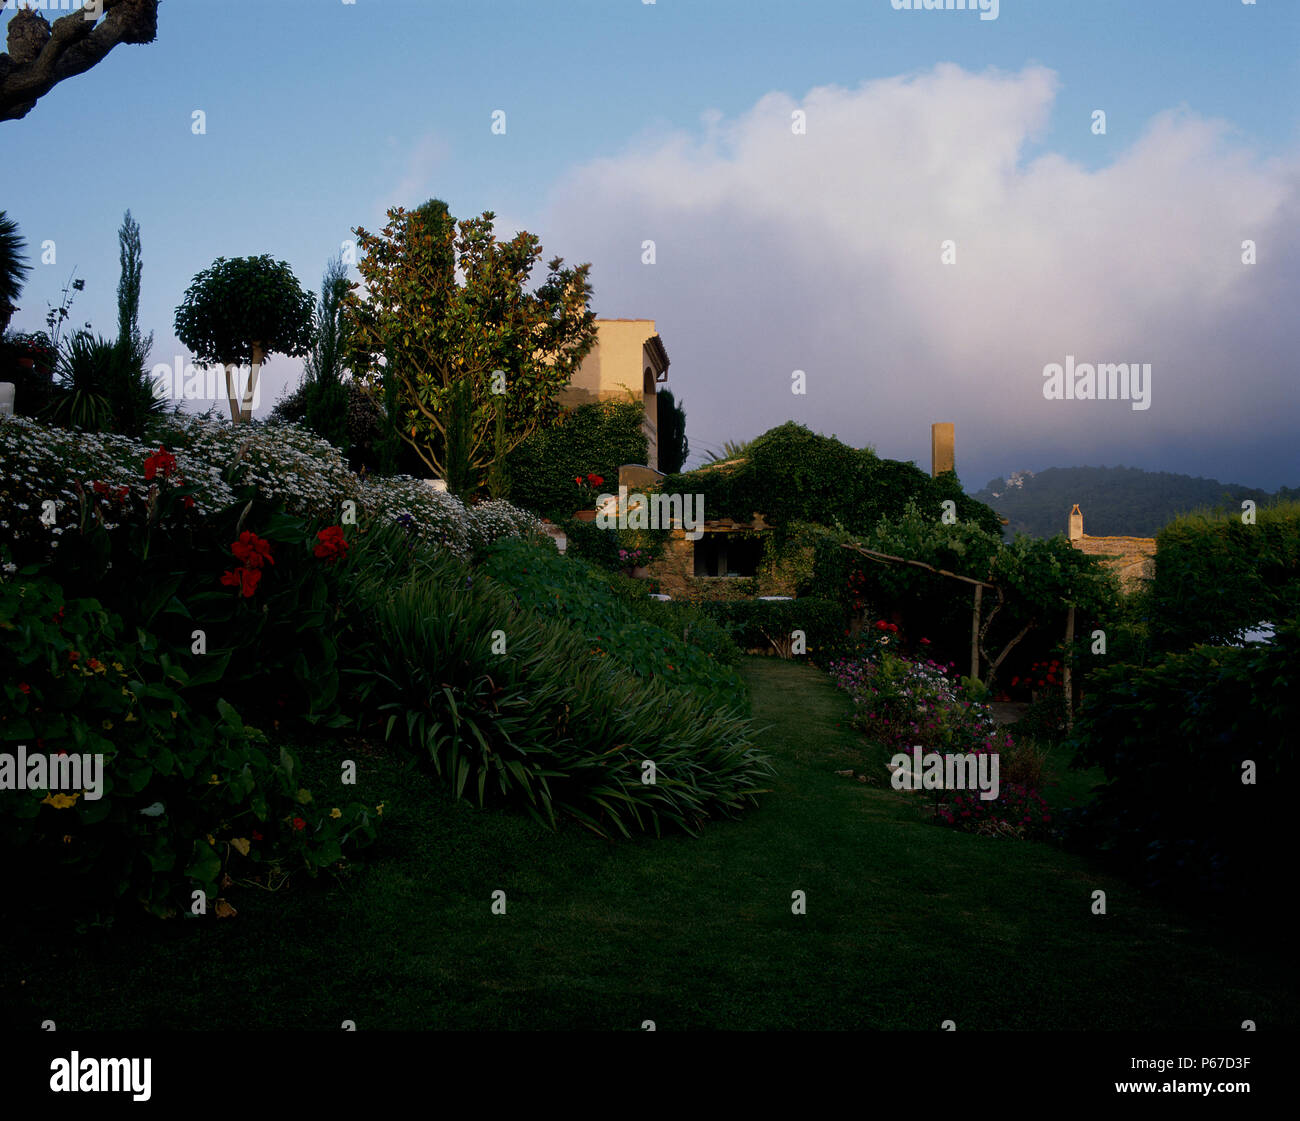 View of esthetic landscaping in the evening - Stock Image